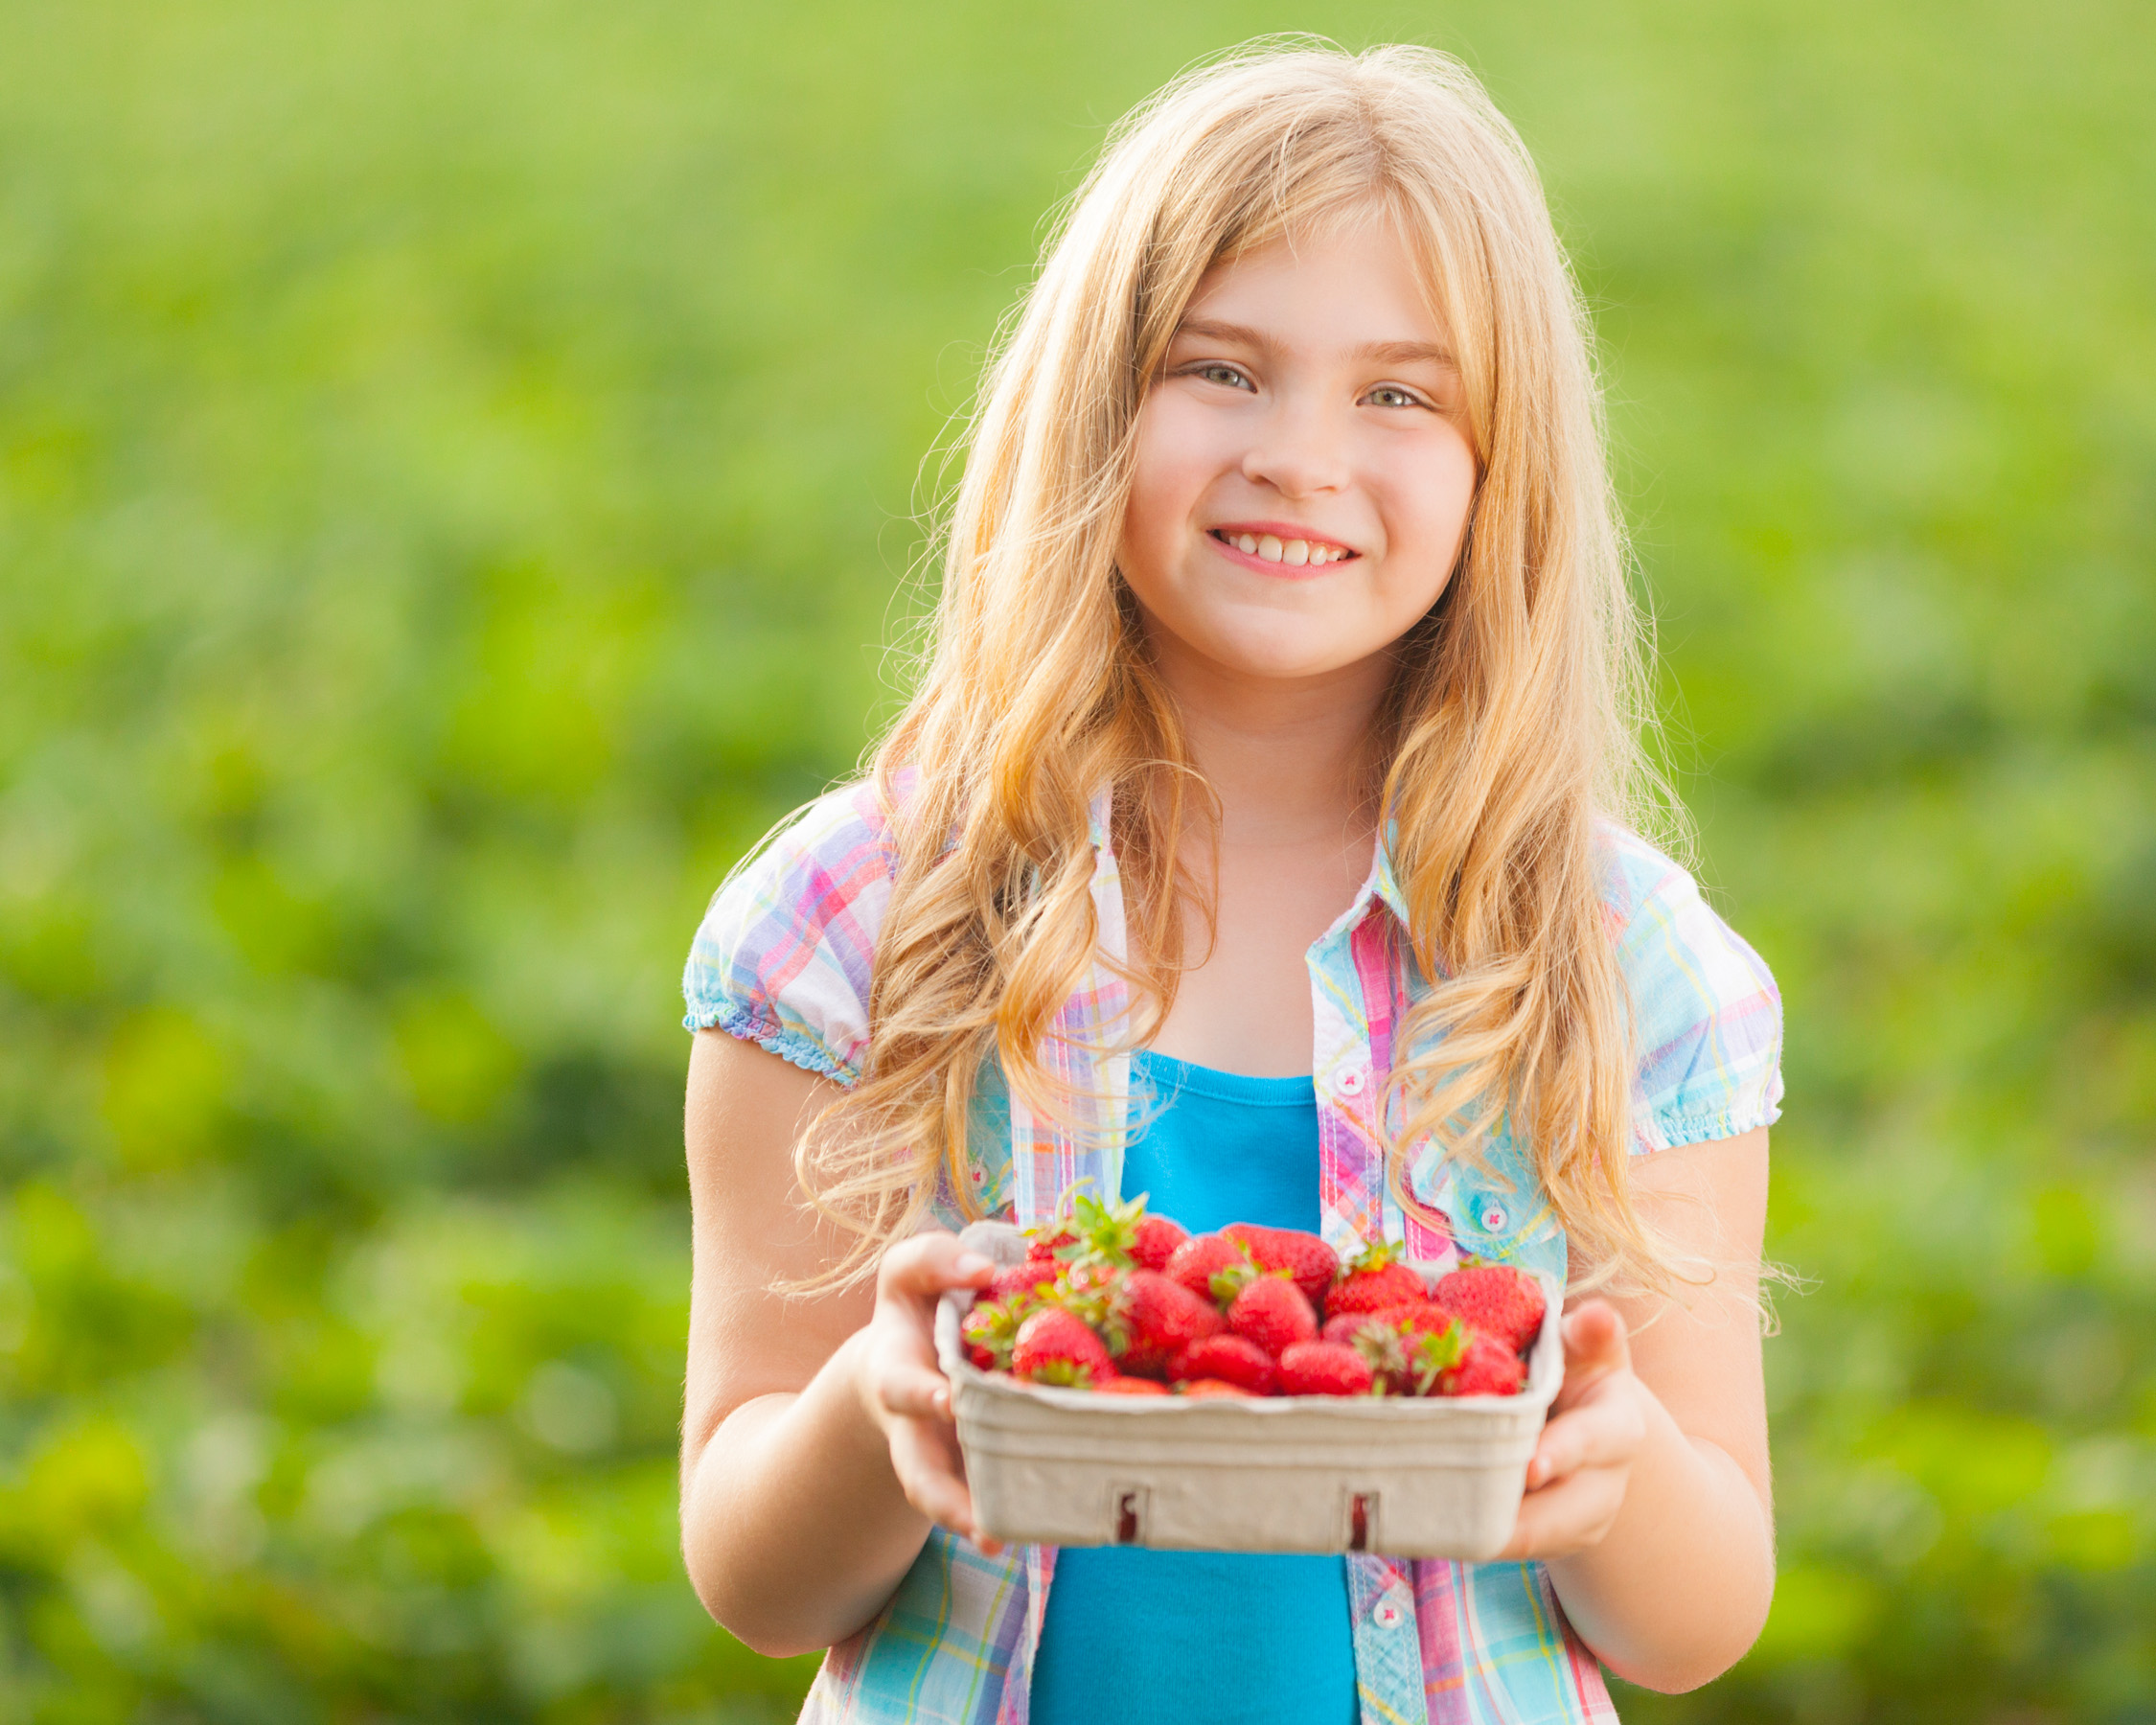 Girl holding fresh strawberries in a strawberry field